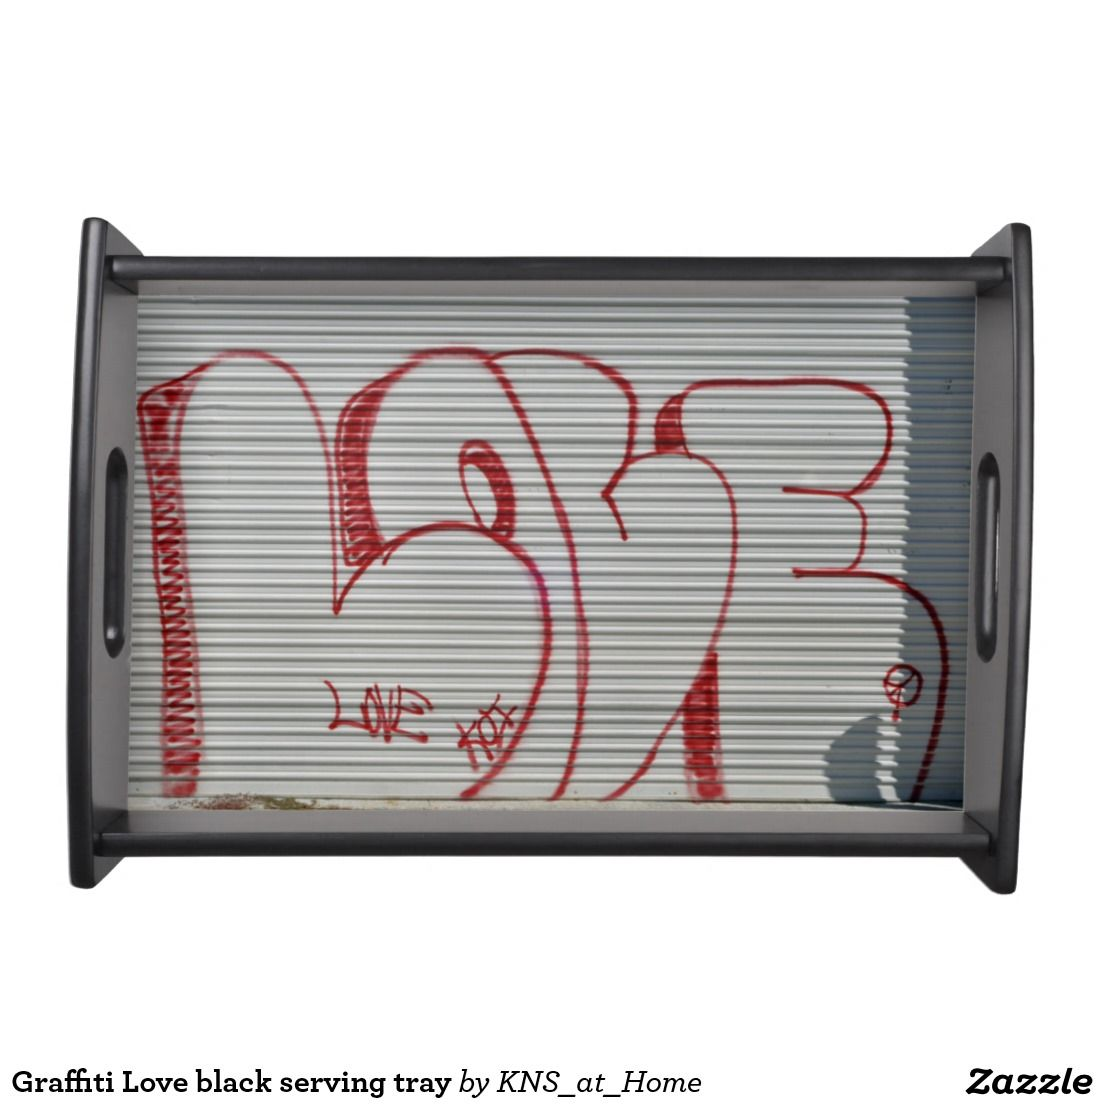 Graffiti Love black serving tray